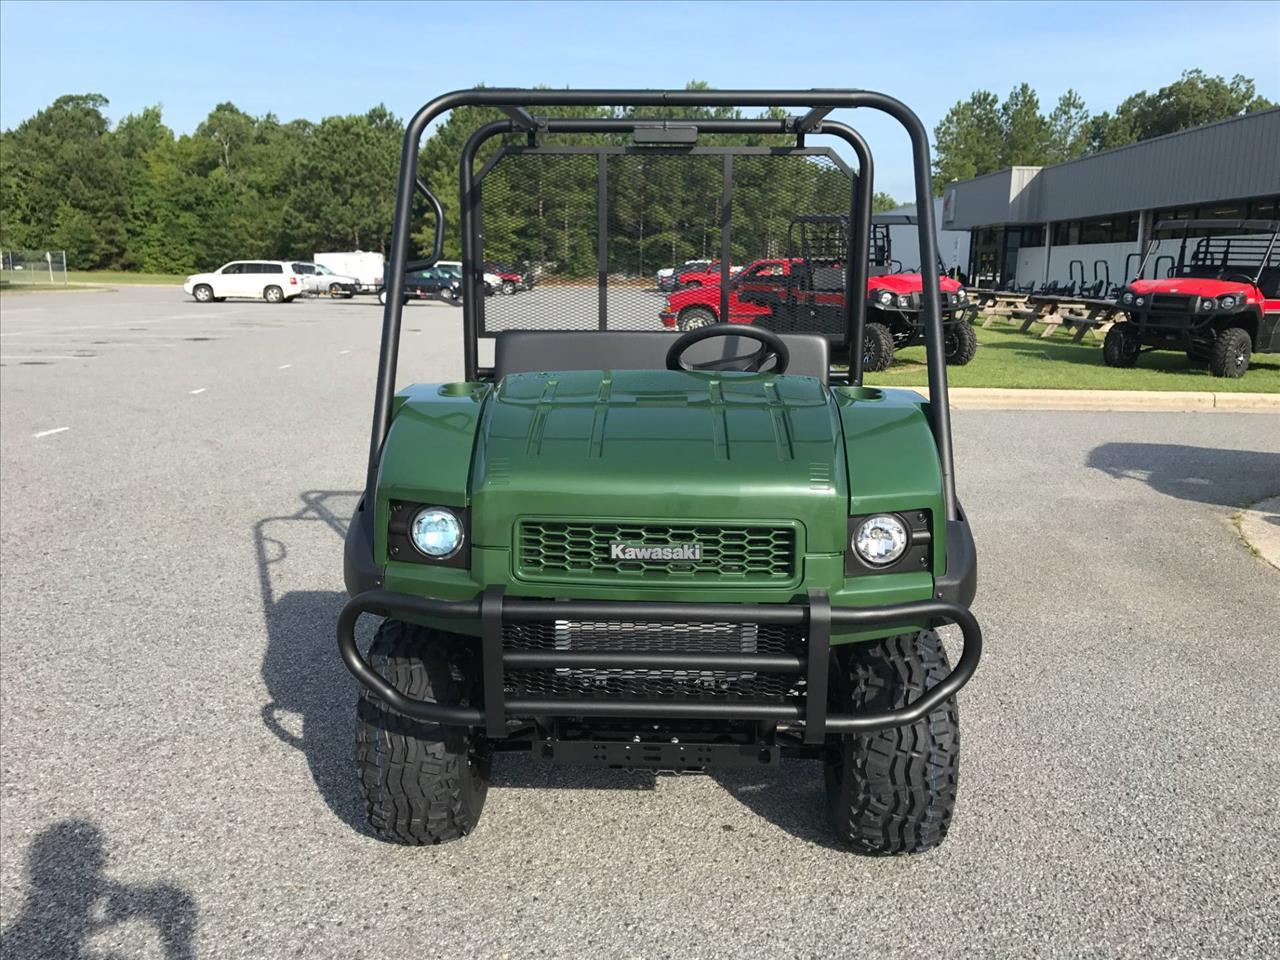 2018 Kawasaki Mule 4010 4x4 for sale at Vehicle Network, LLC - Ron Ayers Motorsports in Greenville NC